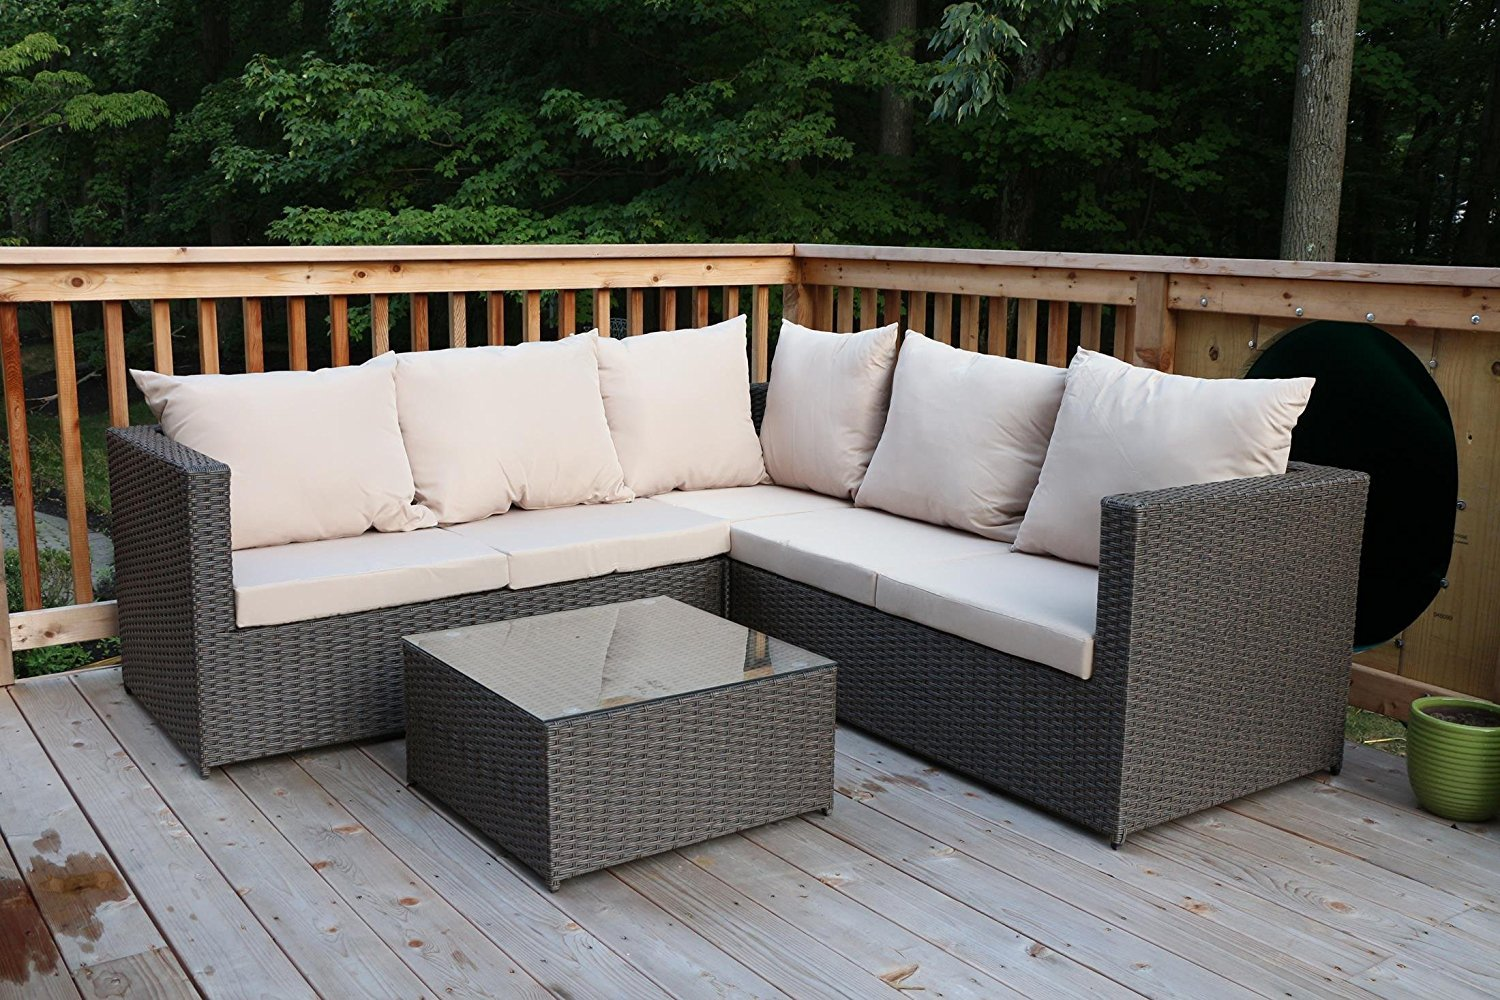 Outdoor Rattan Sectional Sofa Set Outdoor Patio Furniture